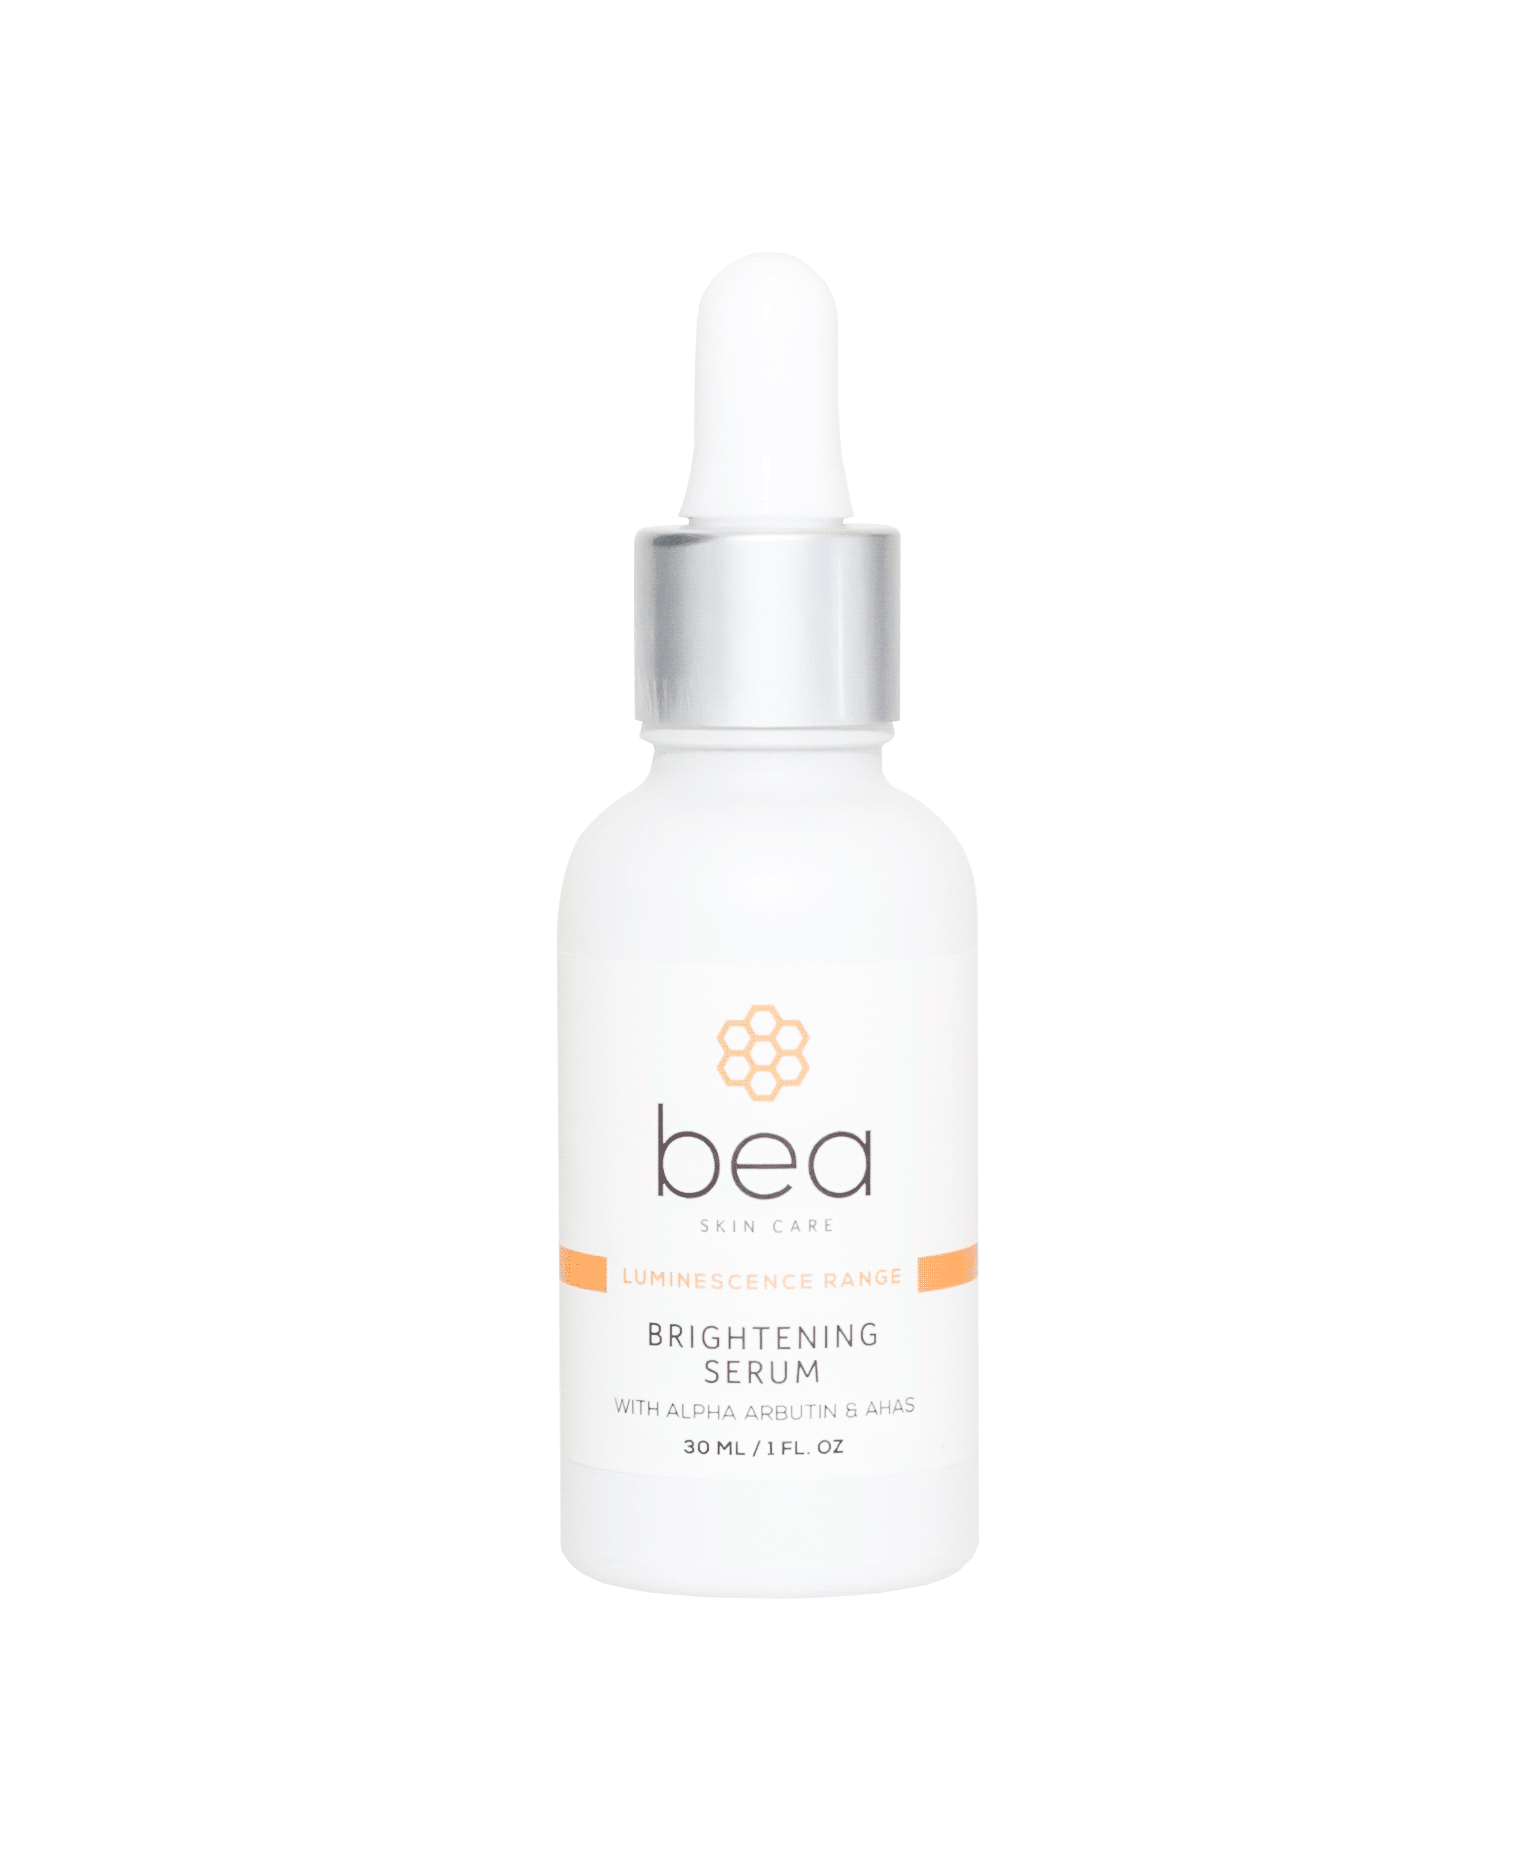 Brightening Serum - 30 ml Face Serum bea Skin Care